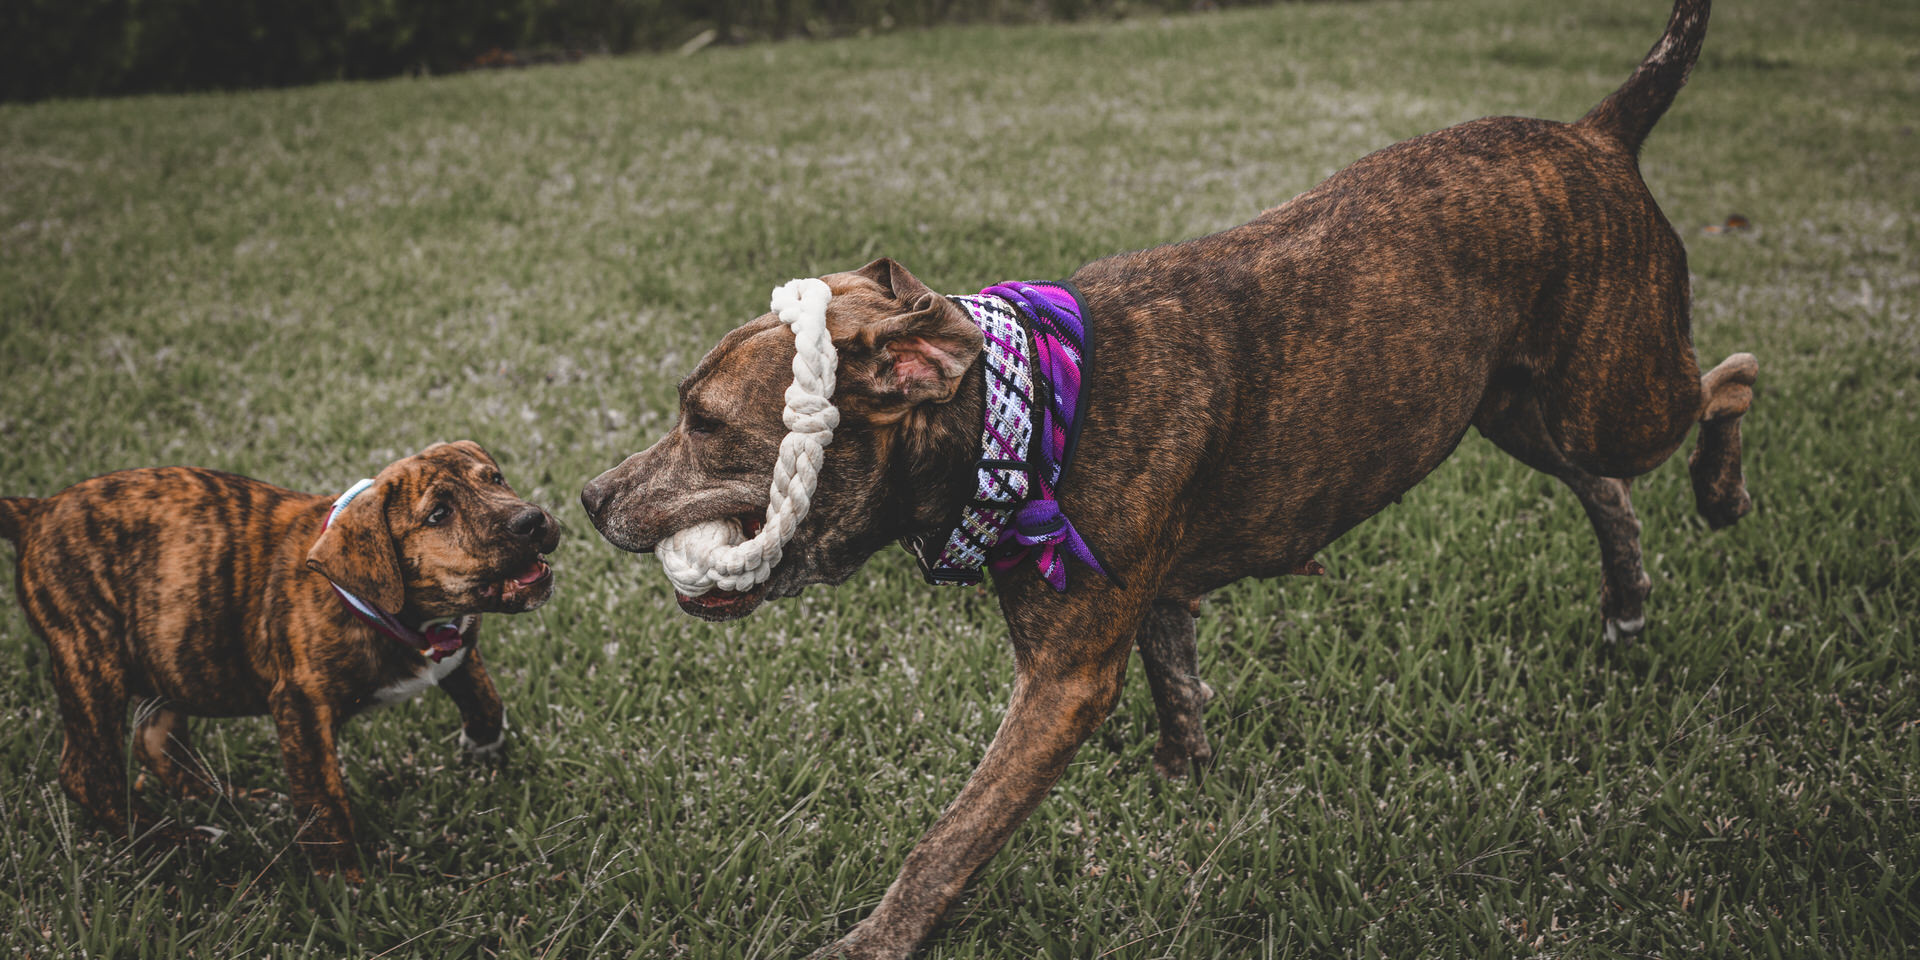 RUFFLY Lookbook – Pages 16 and 17 – RUFFLY Outfitted Dogs Playing with the Mother Hucker